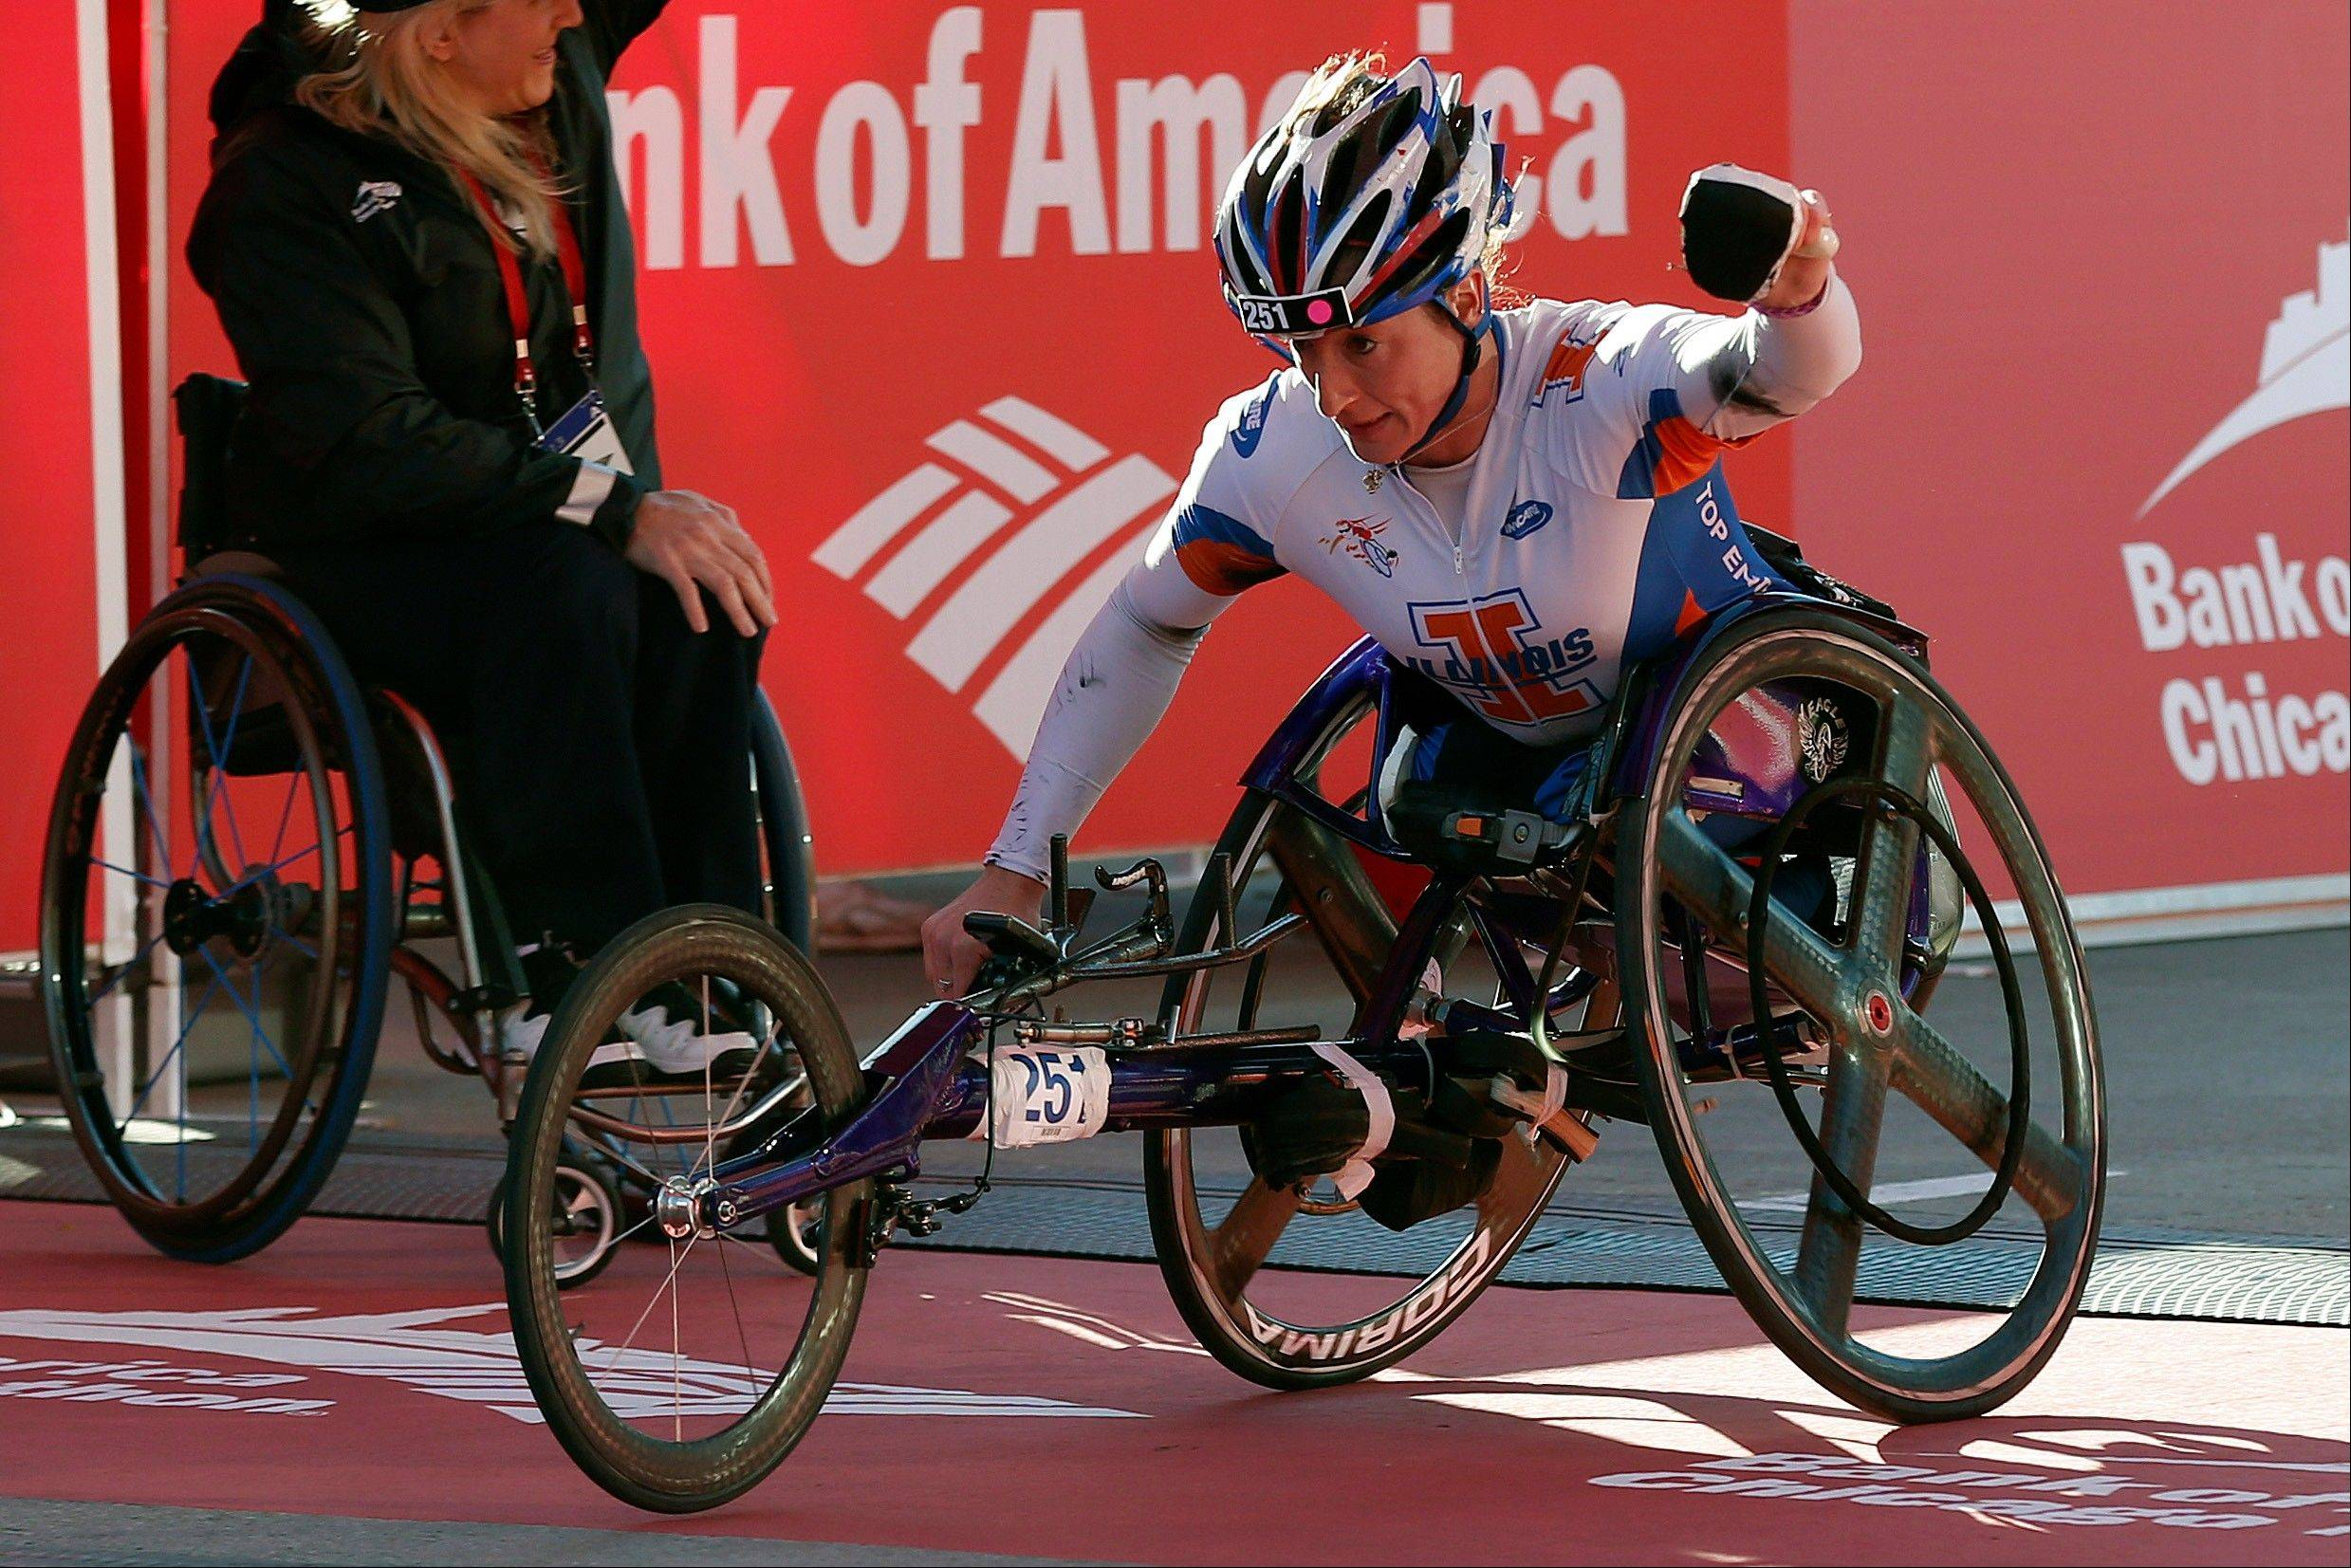 Tatyana McFadden, of Champaign, Ill., wins the woman's wheelchair division during the Chicago Marathon on Sunday. McFadden set a course record.